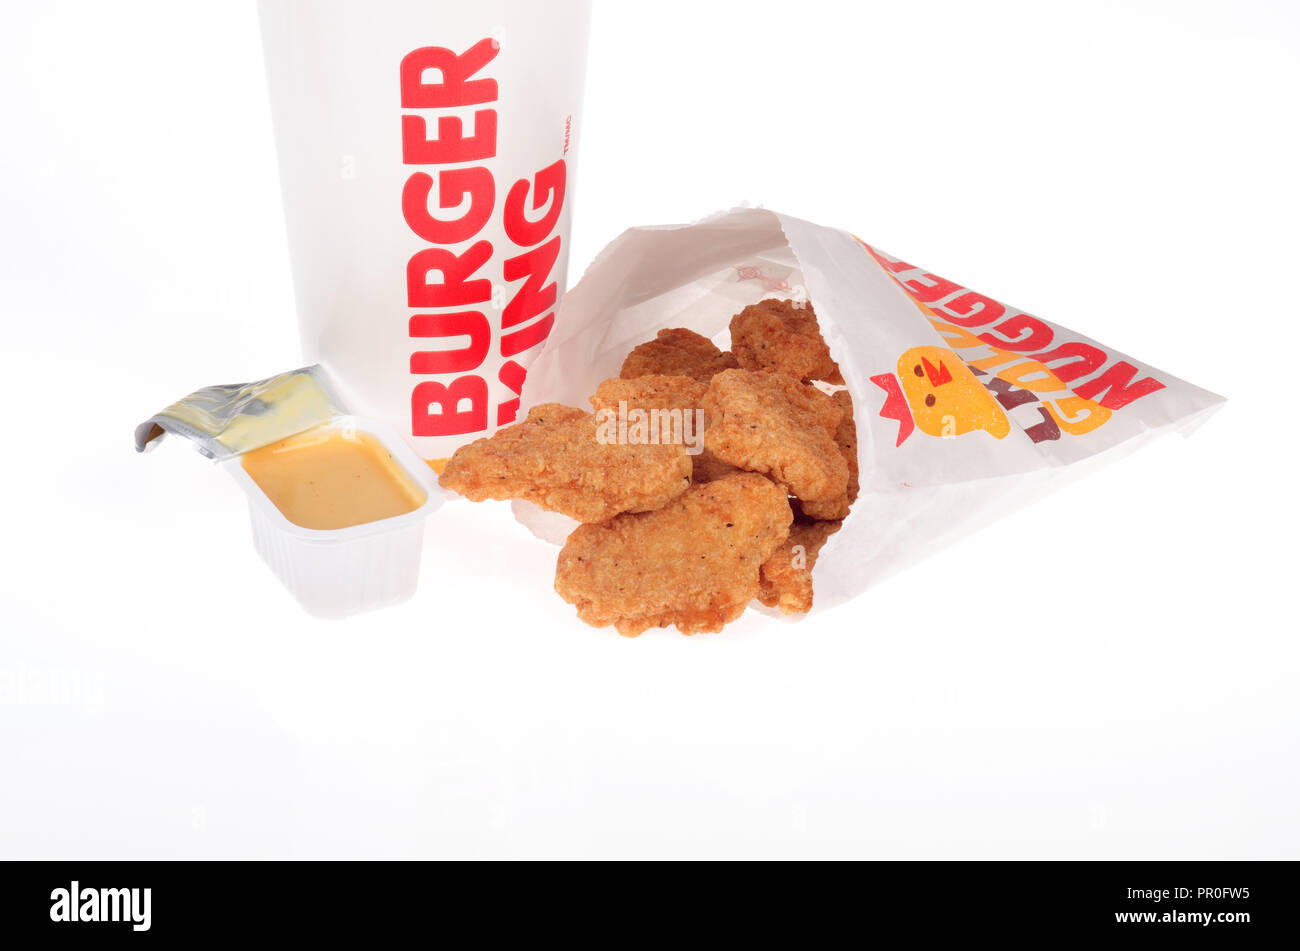 Burger King nuggets de poulet avec sauce moutarde au miel et un verre tasse Photo Stock